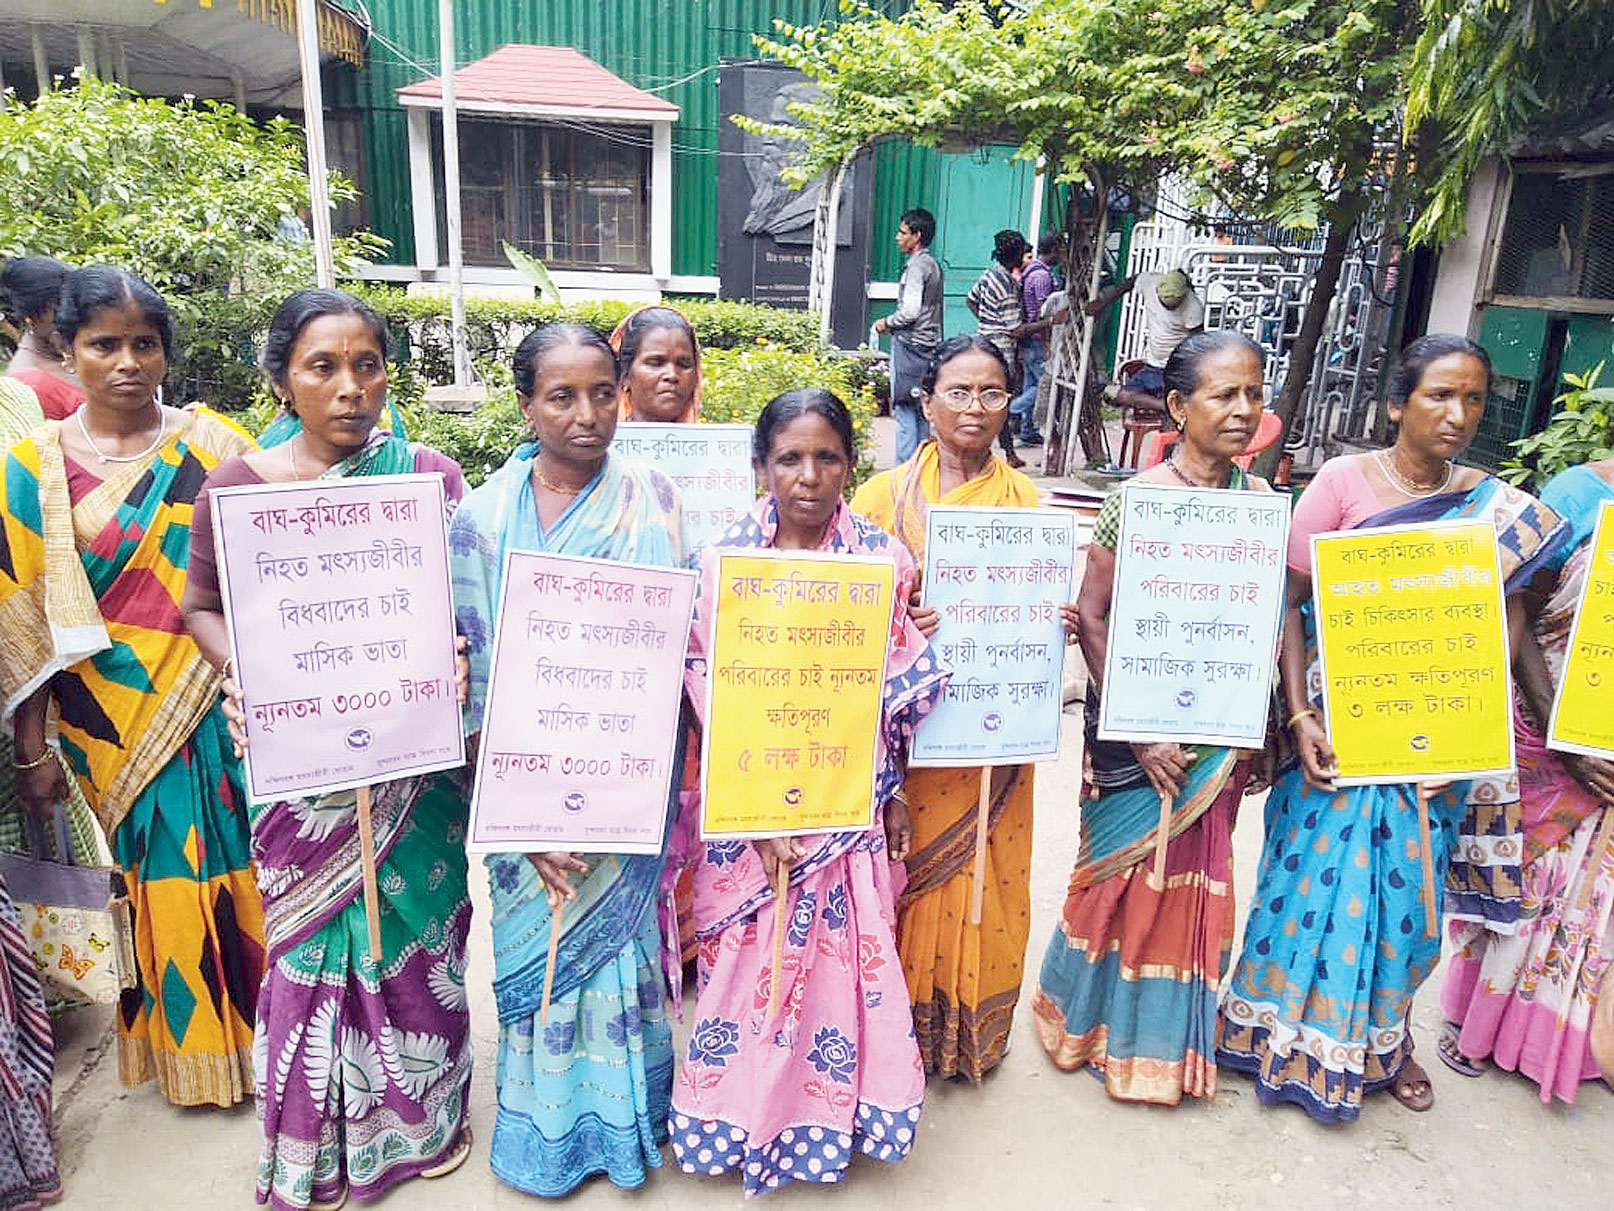 Women from the Sunderbans demand compensation from the state government at Calcutta's Press Club on Thursday.